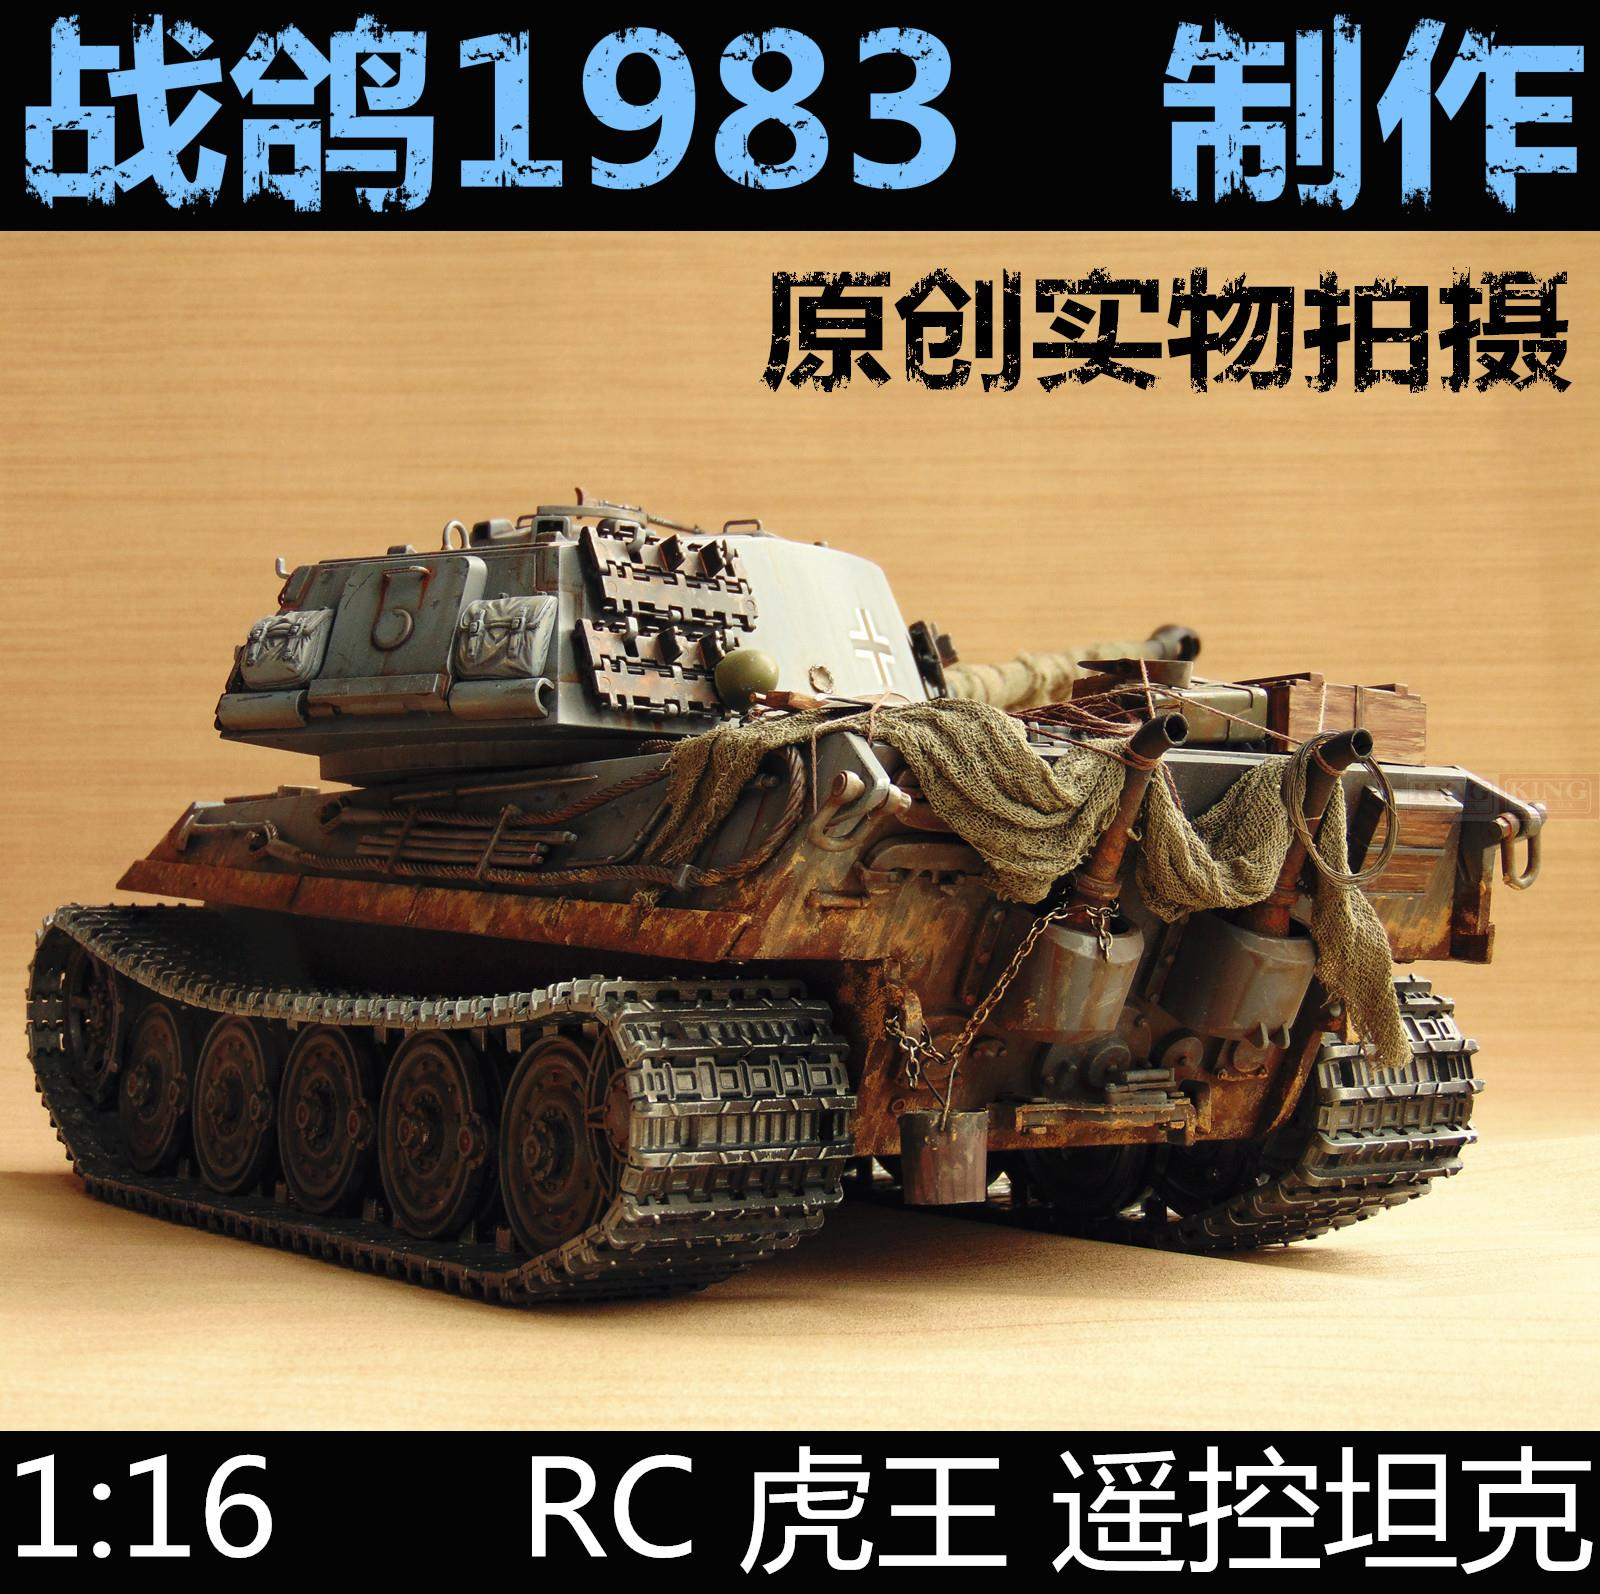 KNL HOBBY 1:16 RC King Tiger tank model remote control OEM heavy coating of paint to do the old upgrade ...